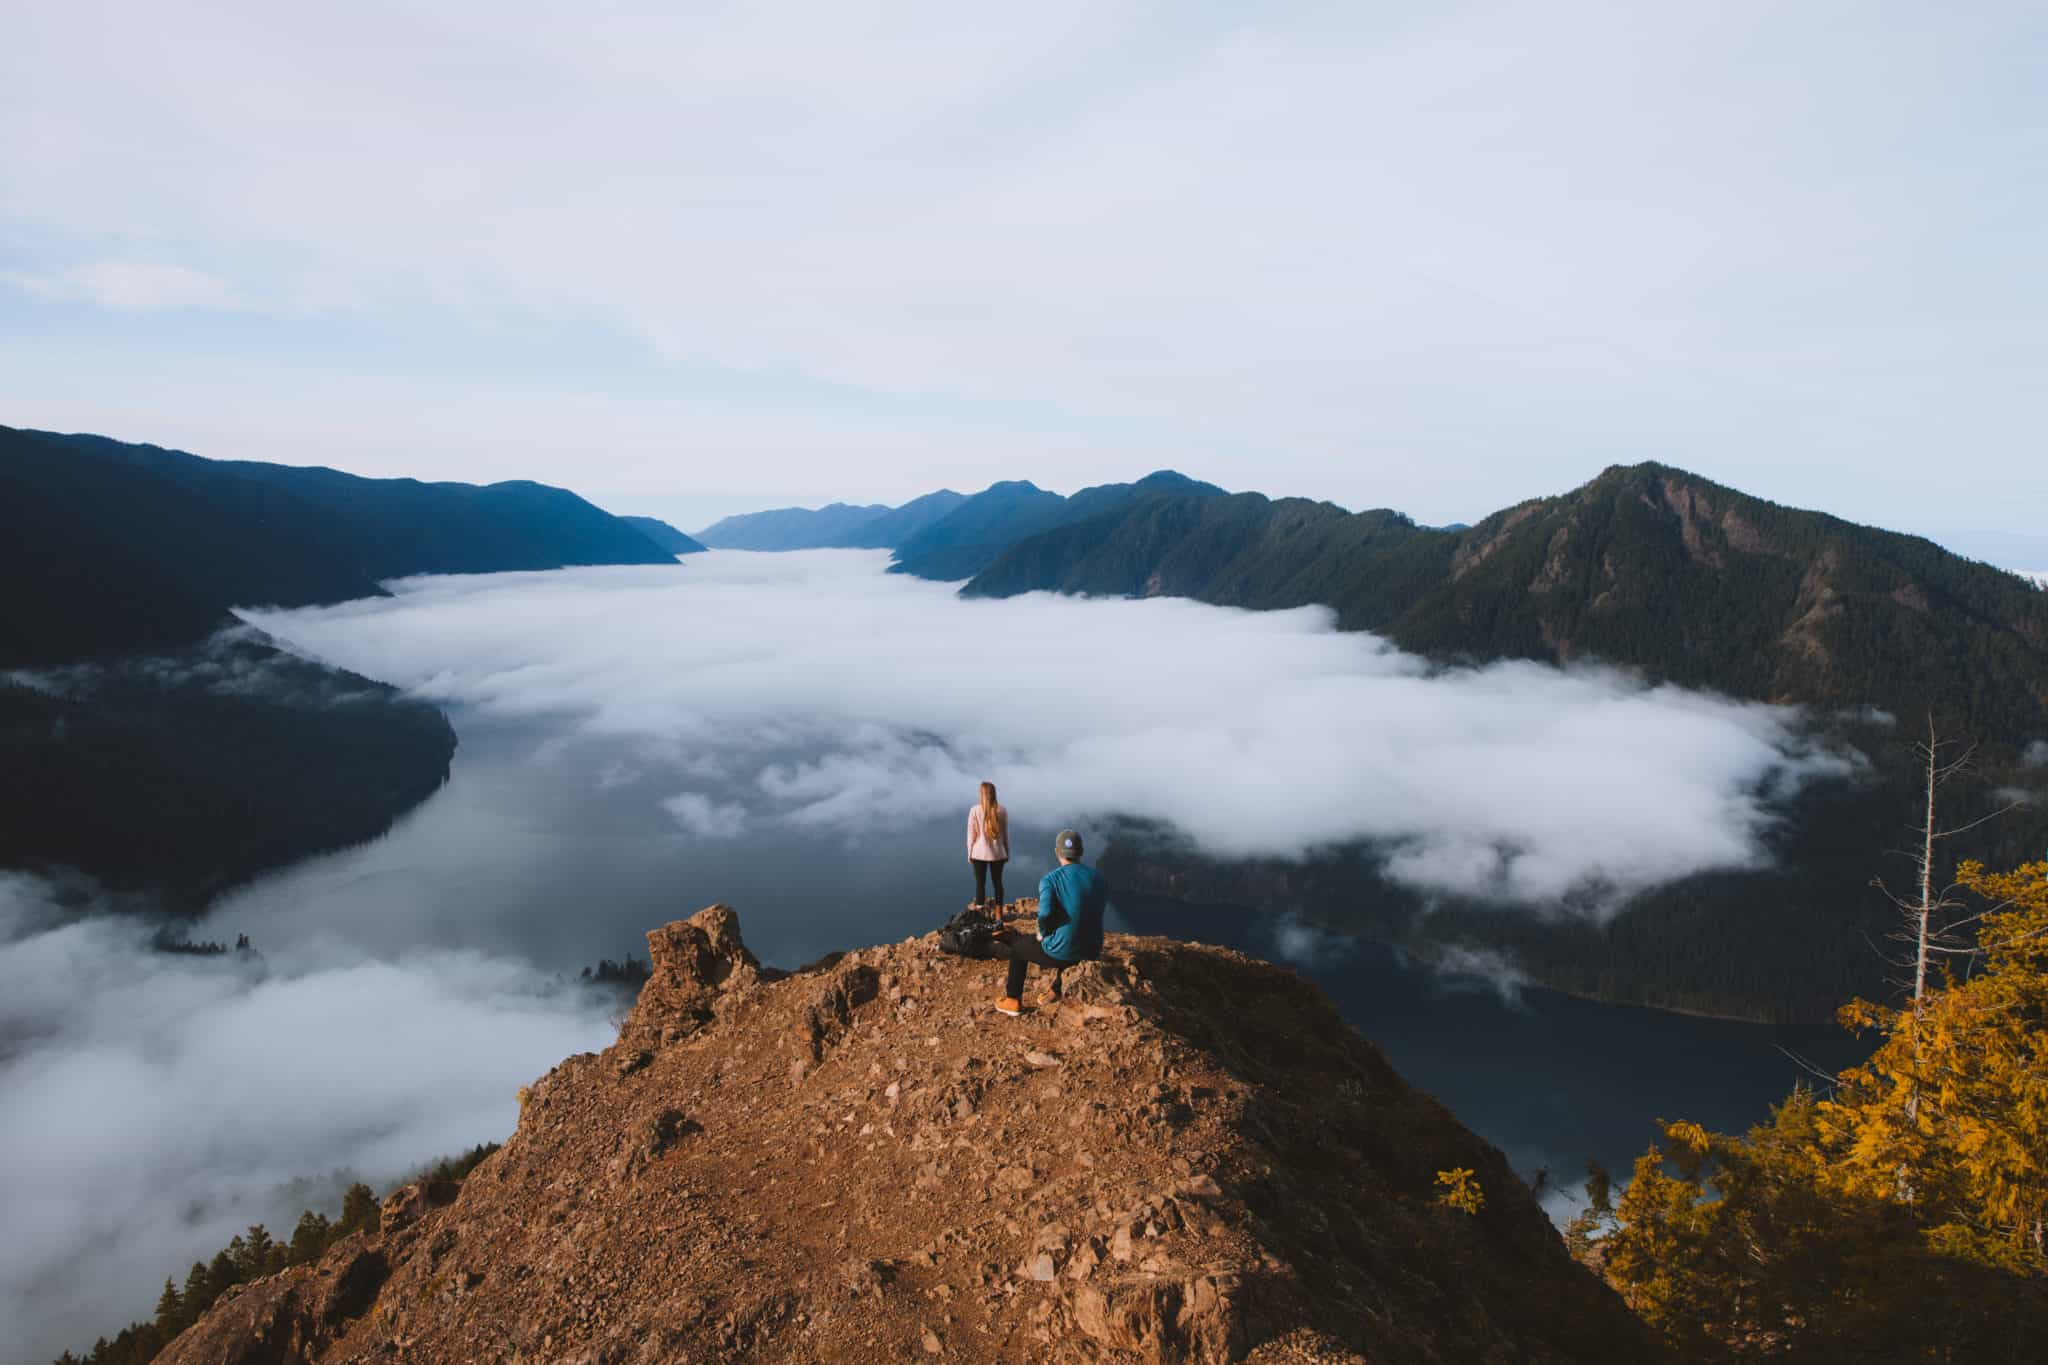 Mount Storm King - Hiking In The Pacific Northwest - TheMandagies.com